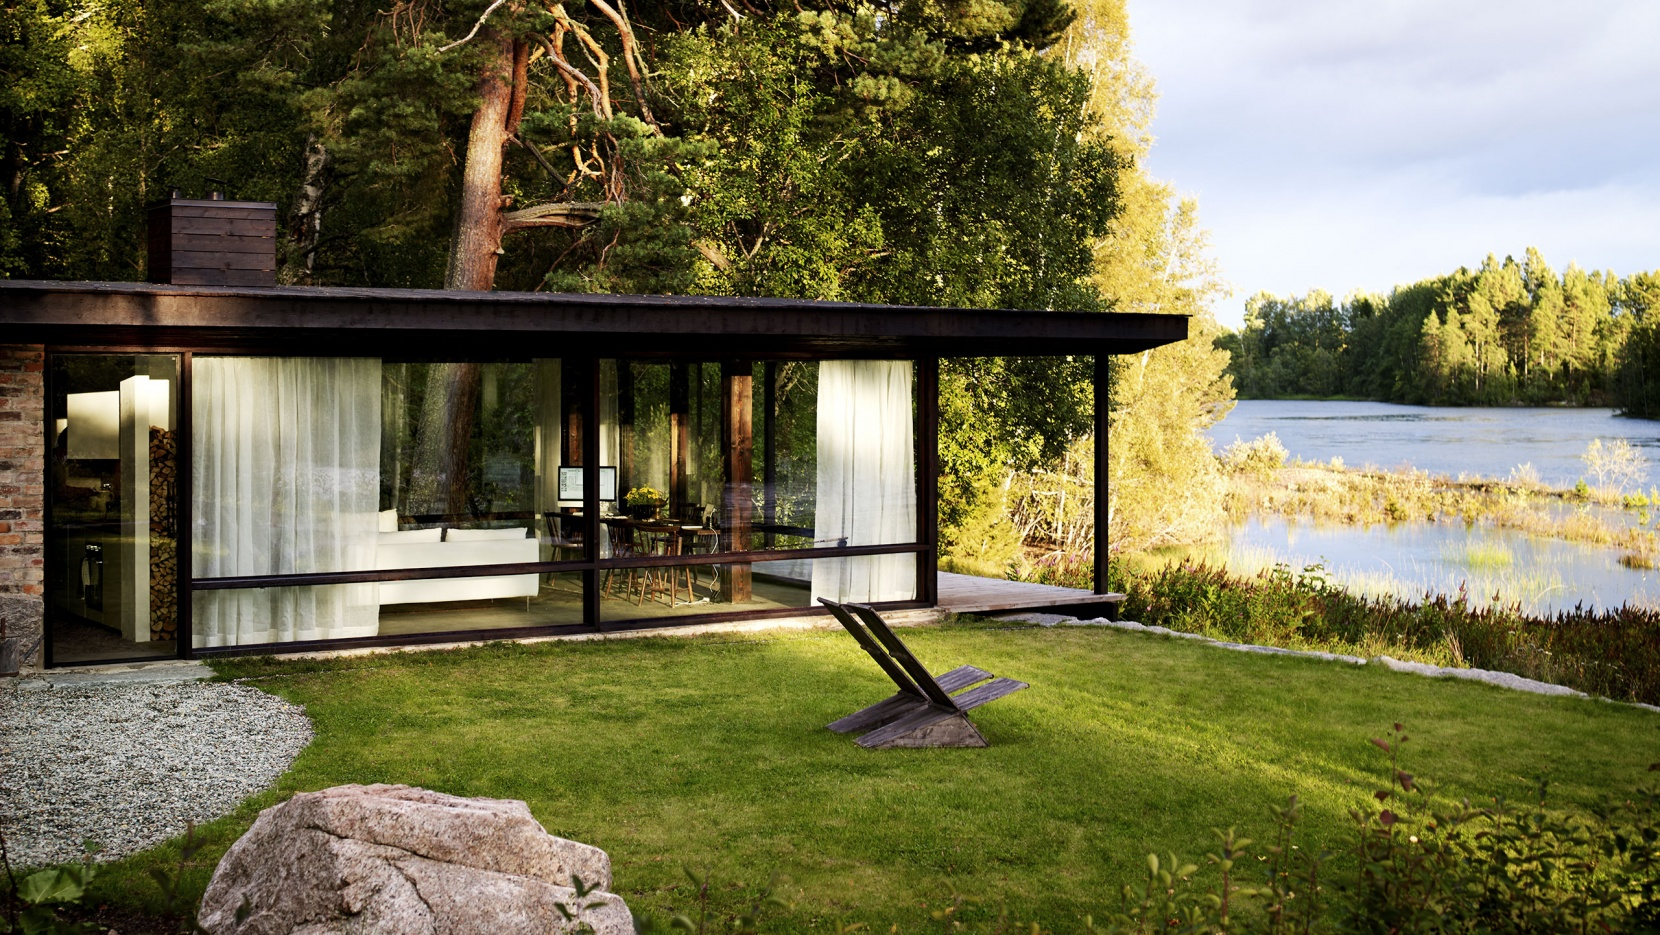 Life in a box the summer house of architect buster delin in sweden yatzer